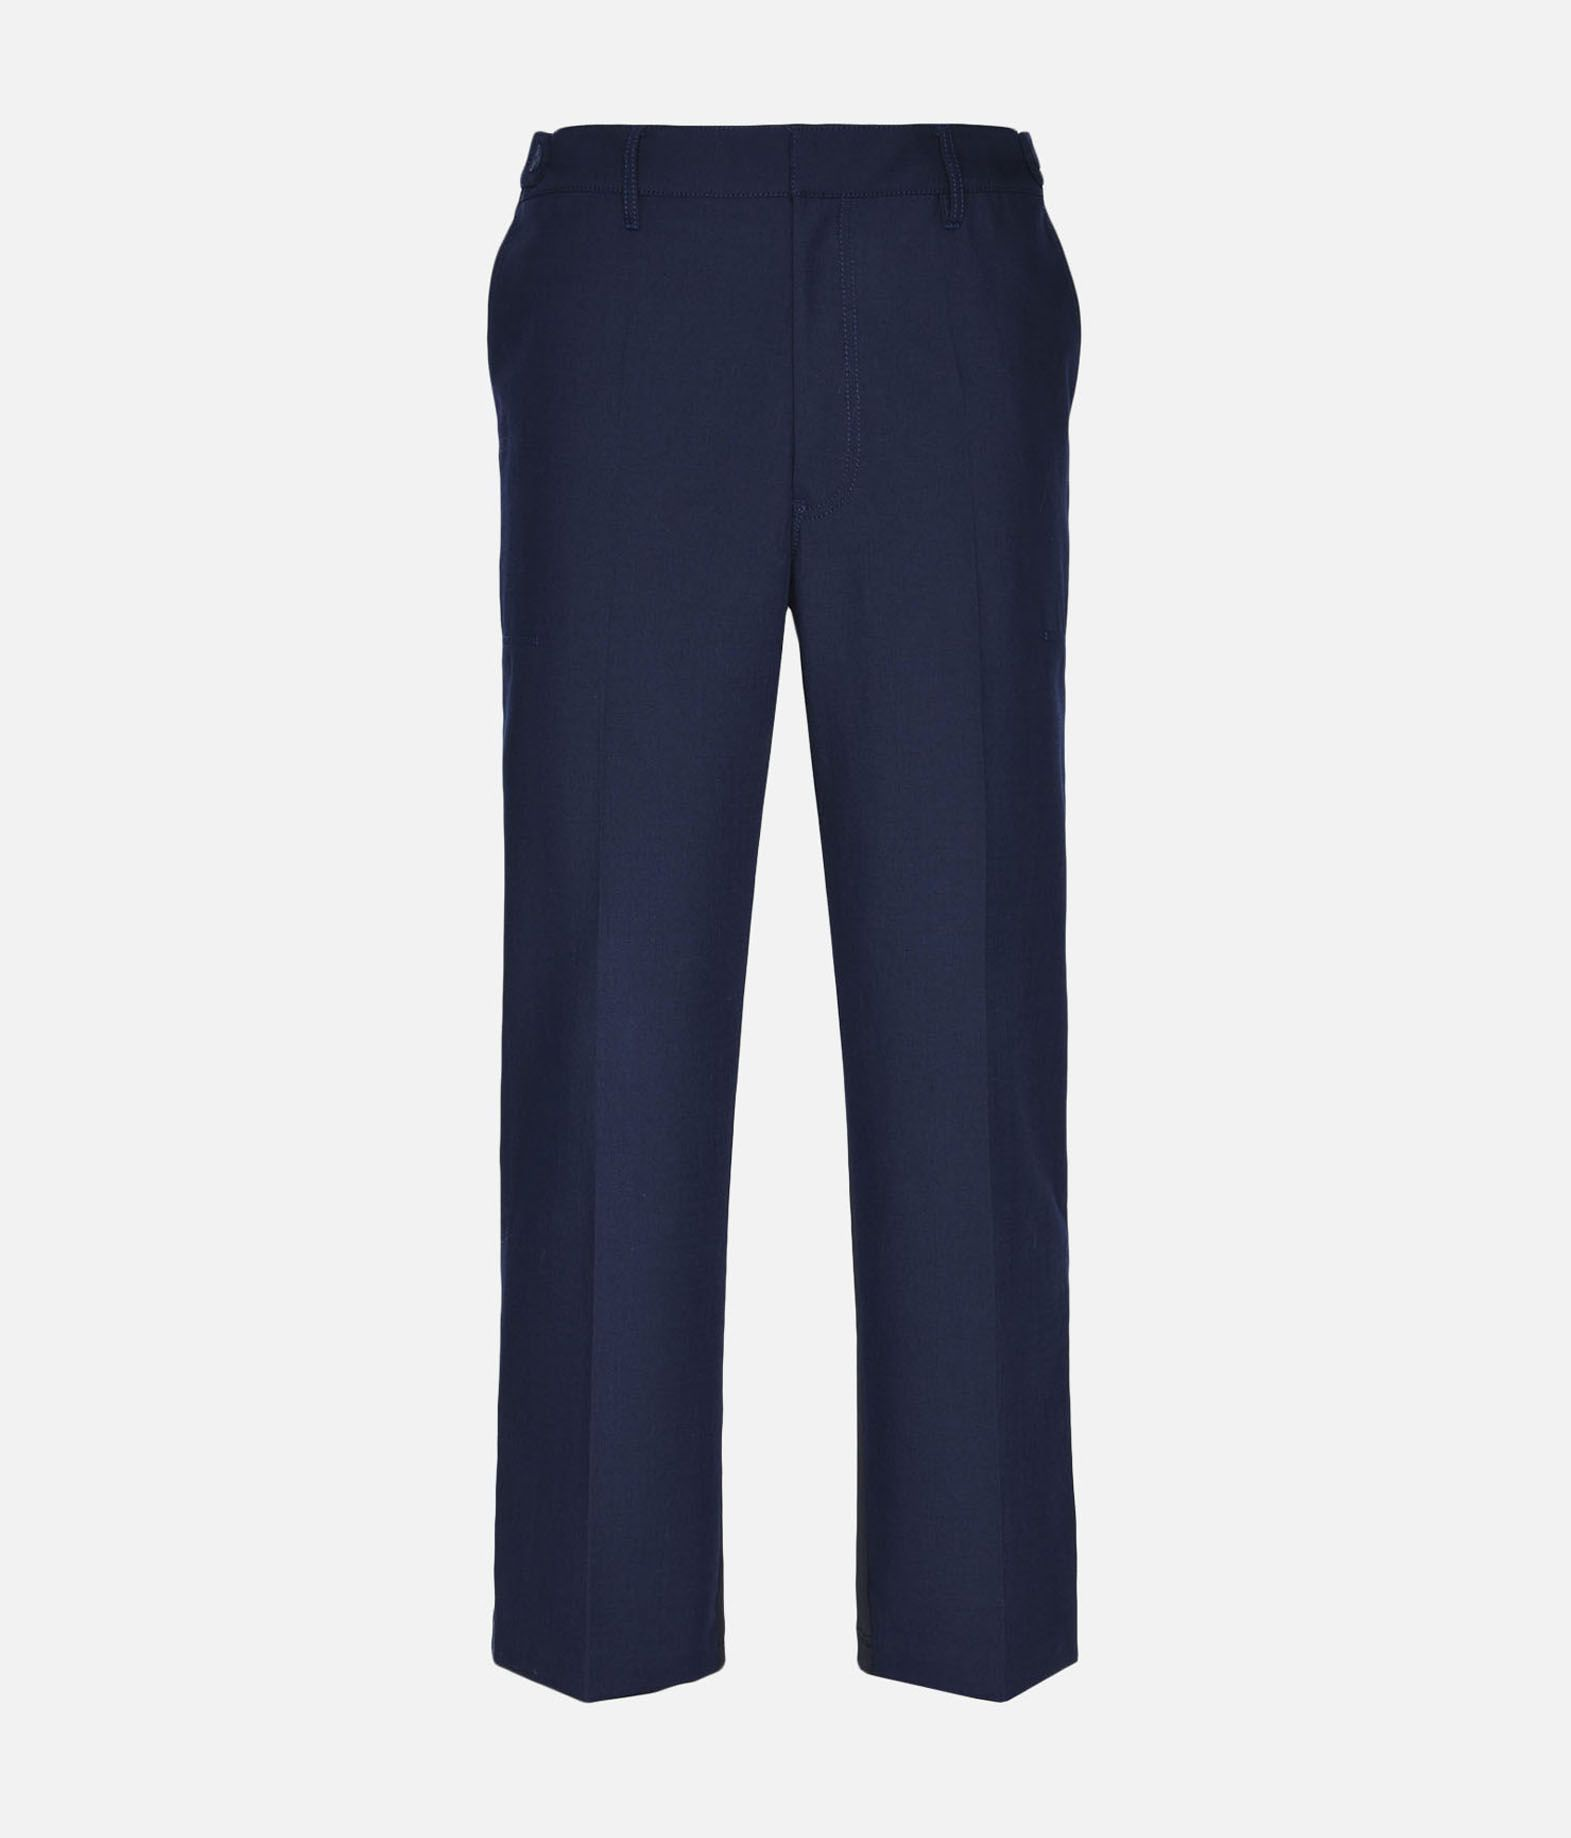 Y-3 Y-3 Dress Pants Casual trouser Man f